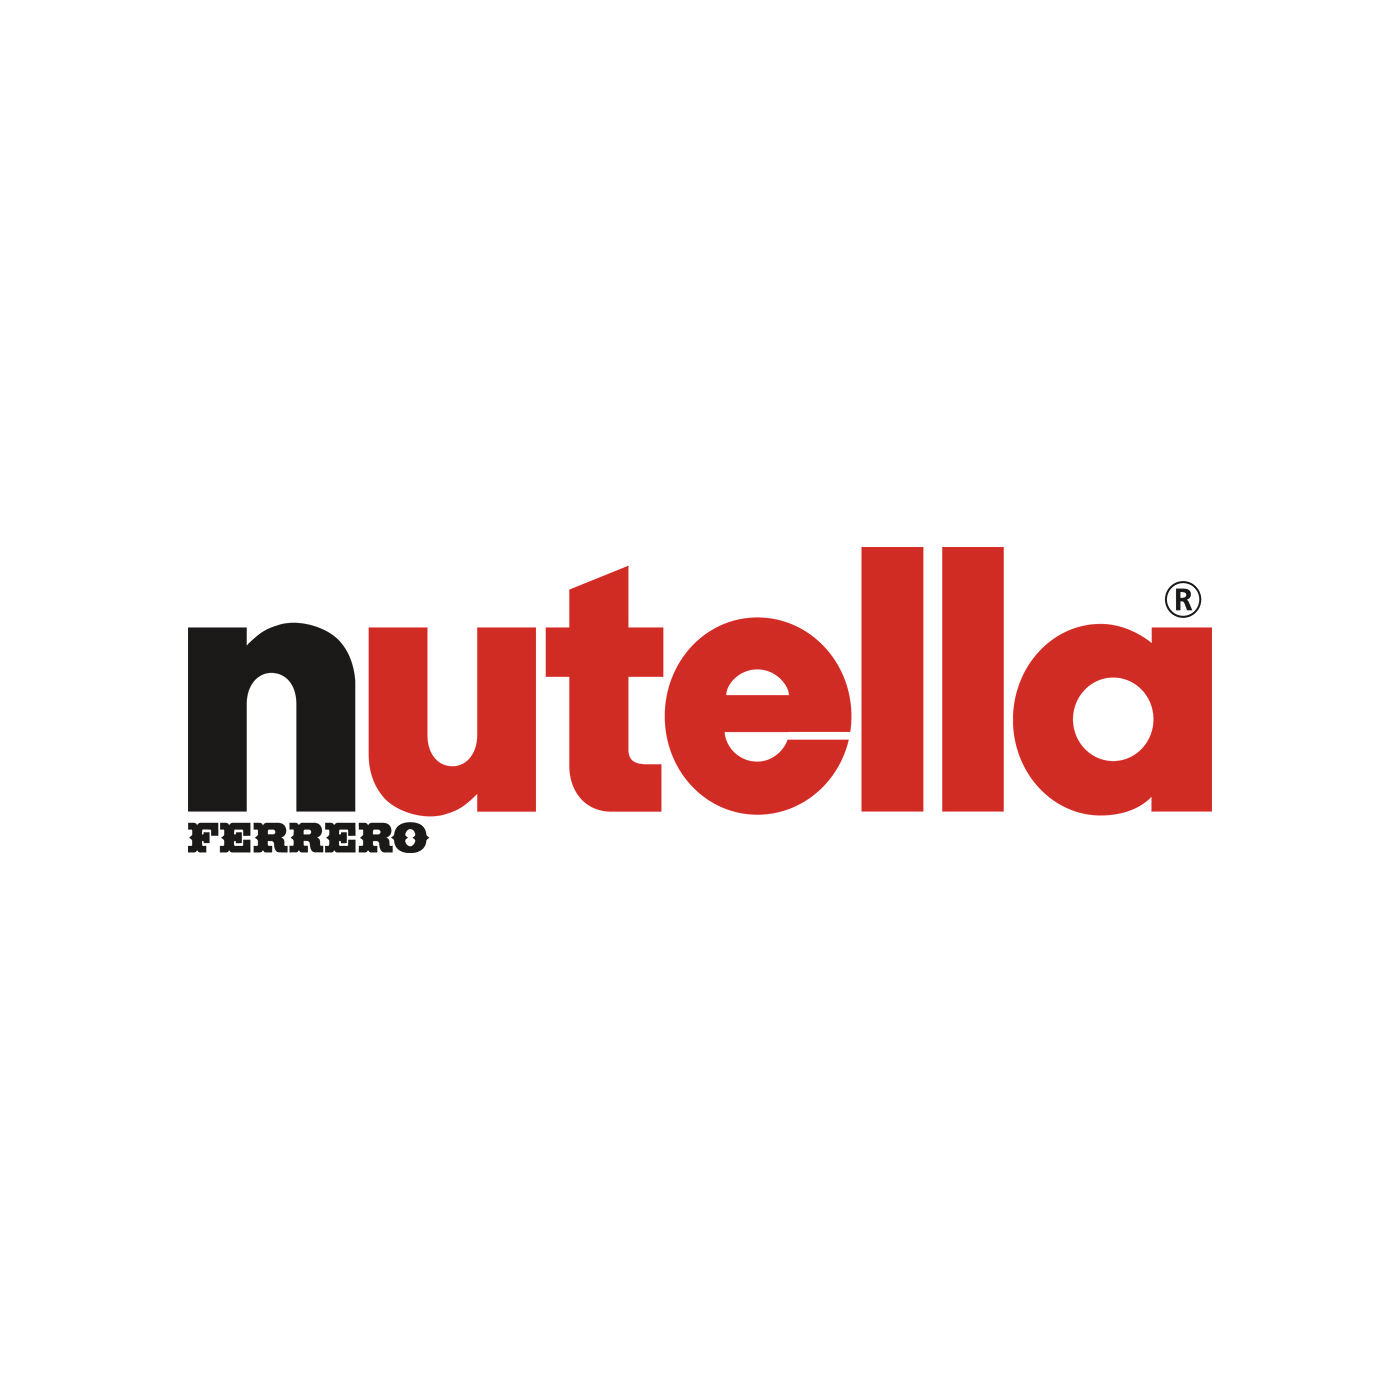 Image of nutella